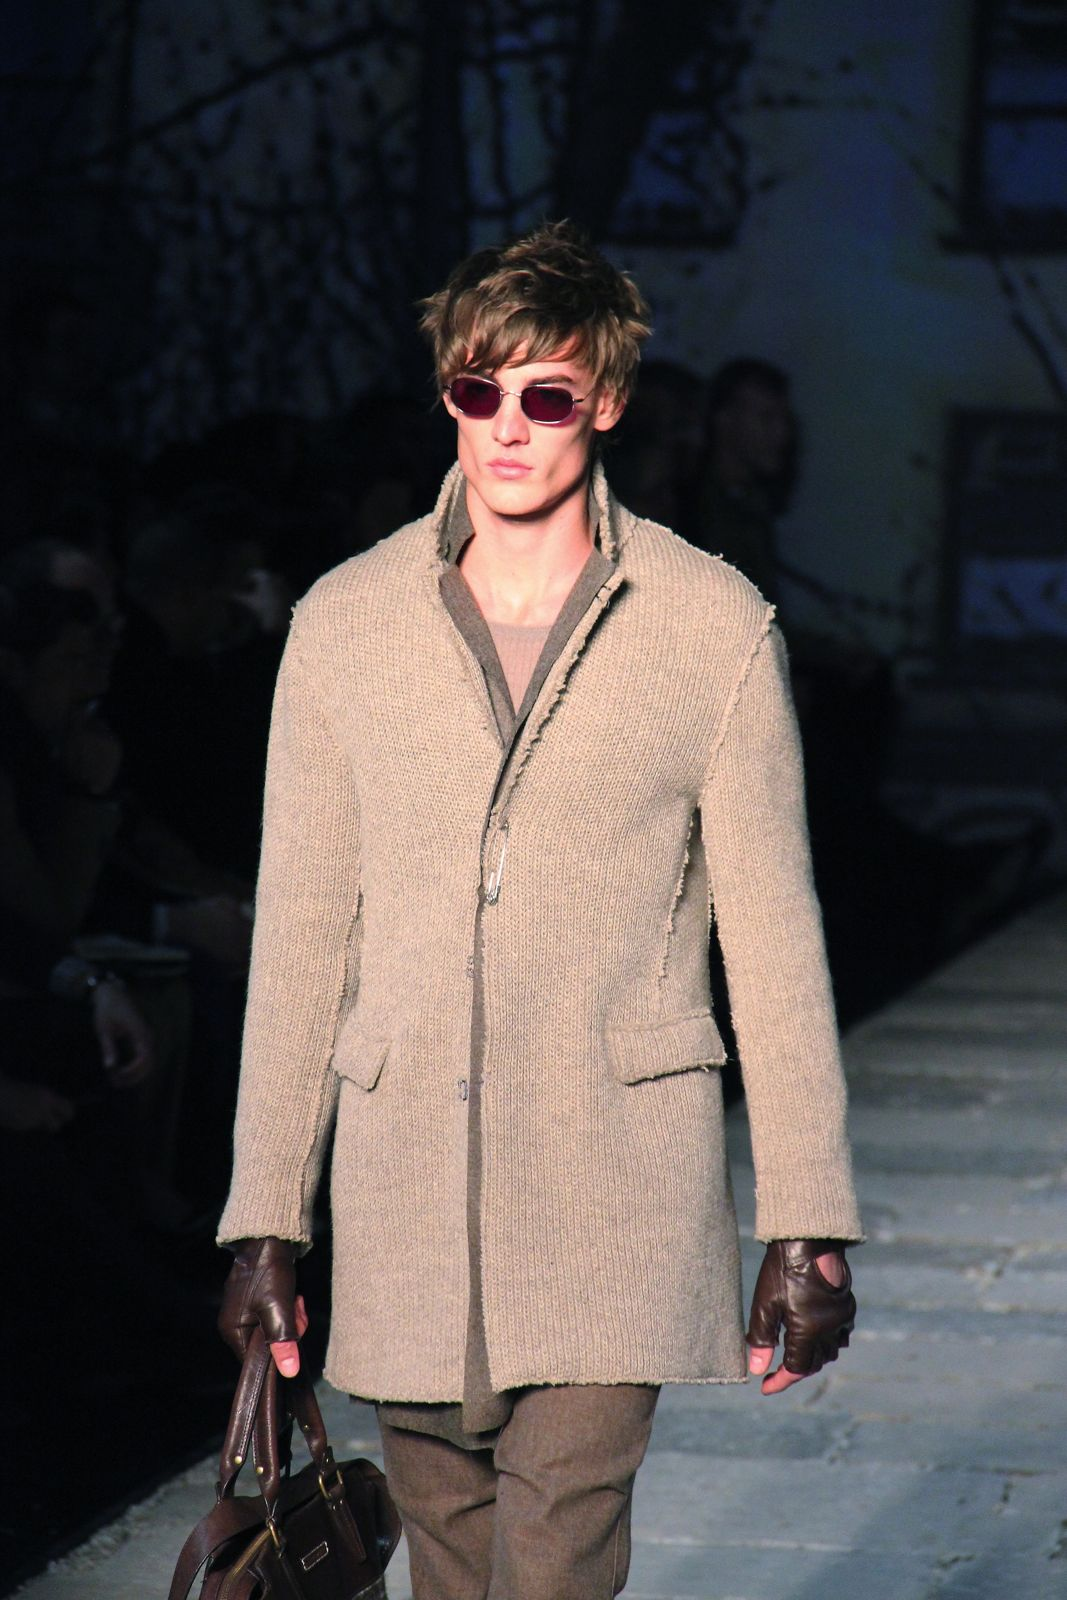 Catwalk John Varvatos Fall Winter 2012 Men Fashion Show